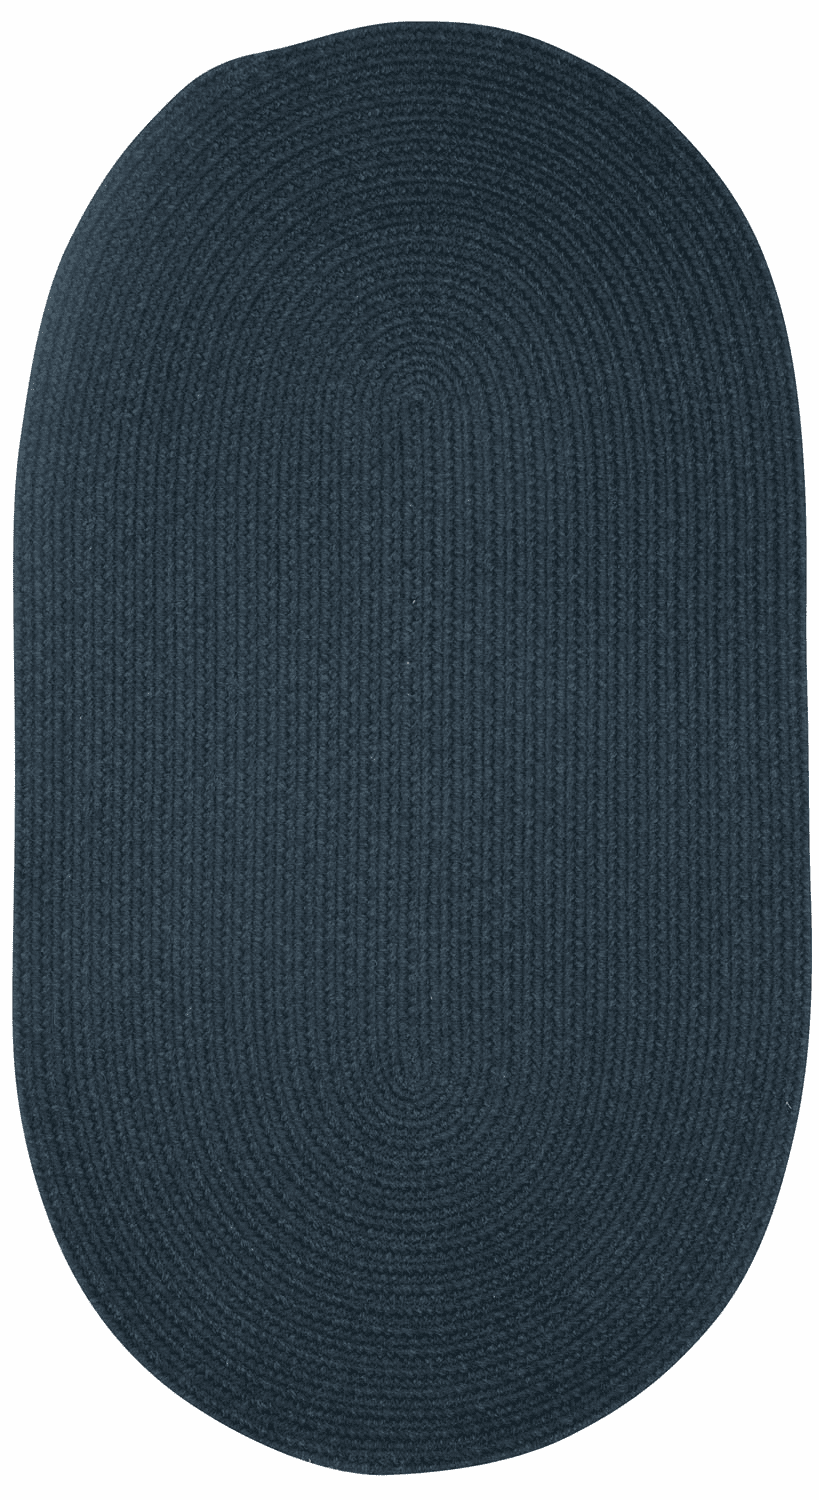 Hand-Braided Dark Blue Rug